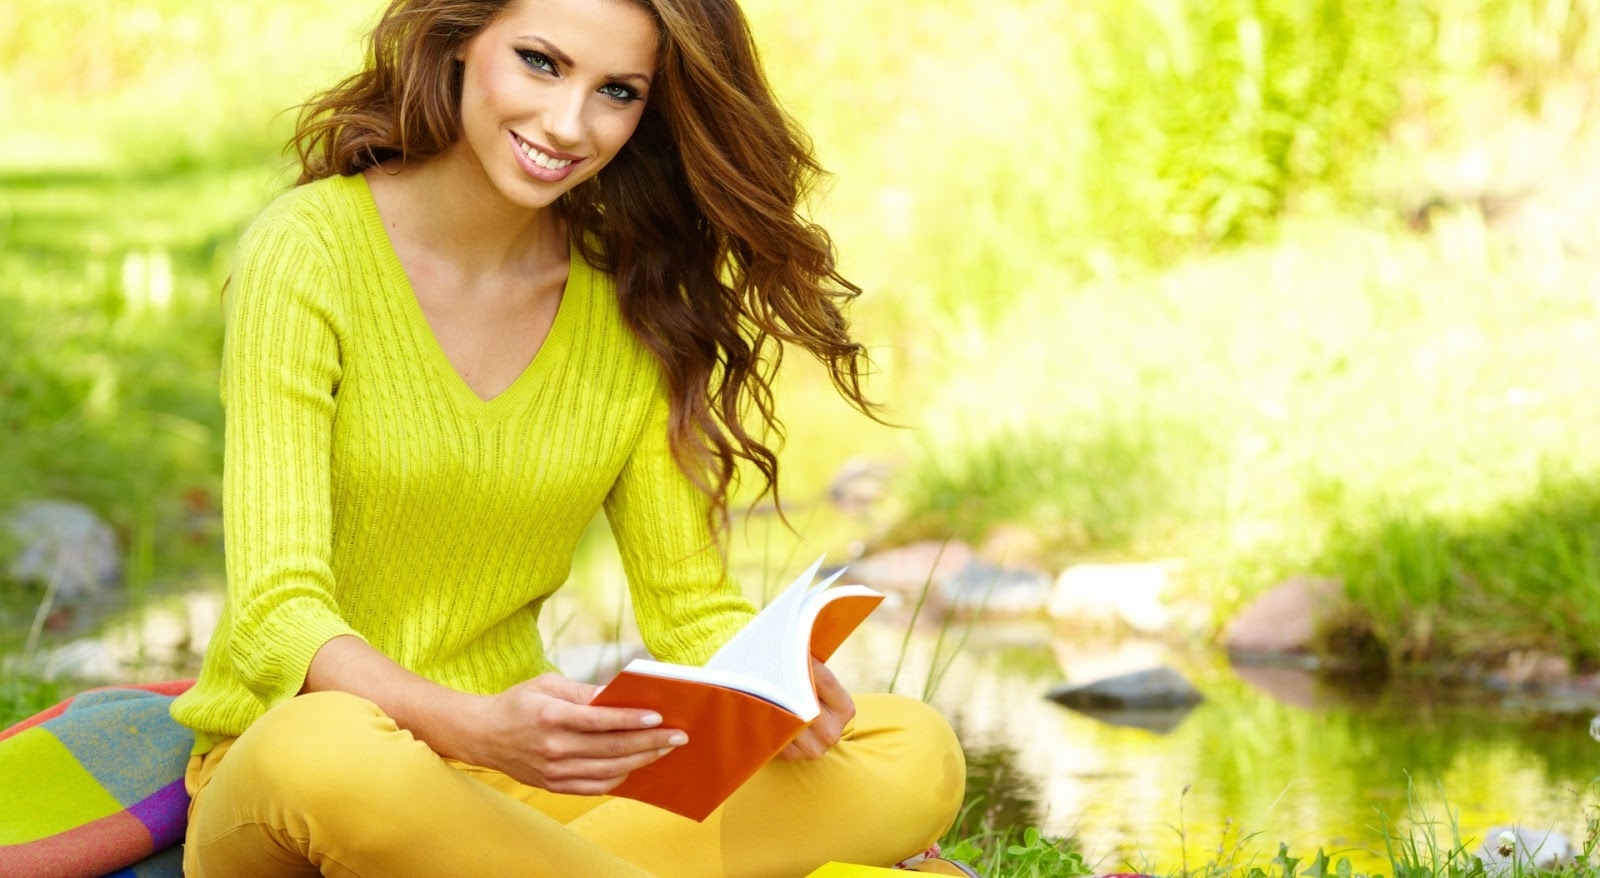 Love Girl Reading Wallpaper : Beautiful Girls HD Wallpapers Download 1080p Ultra HD Wallpapers hdwallpaperspack.in